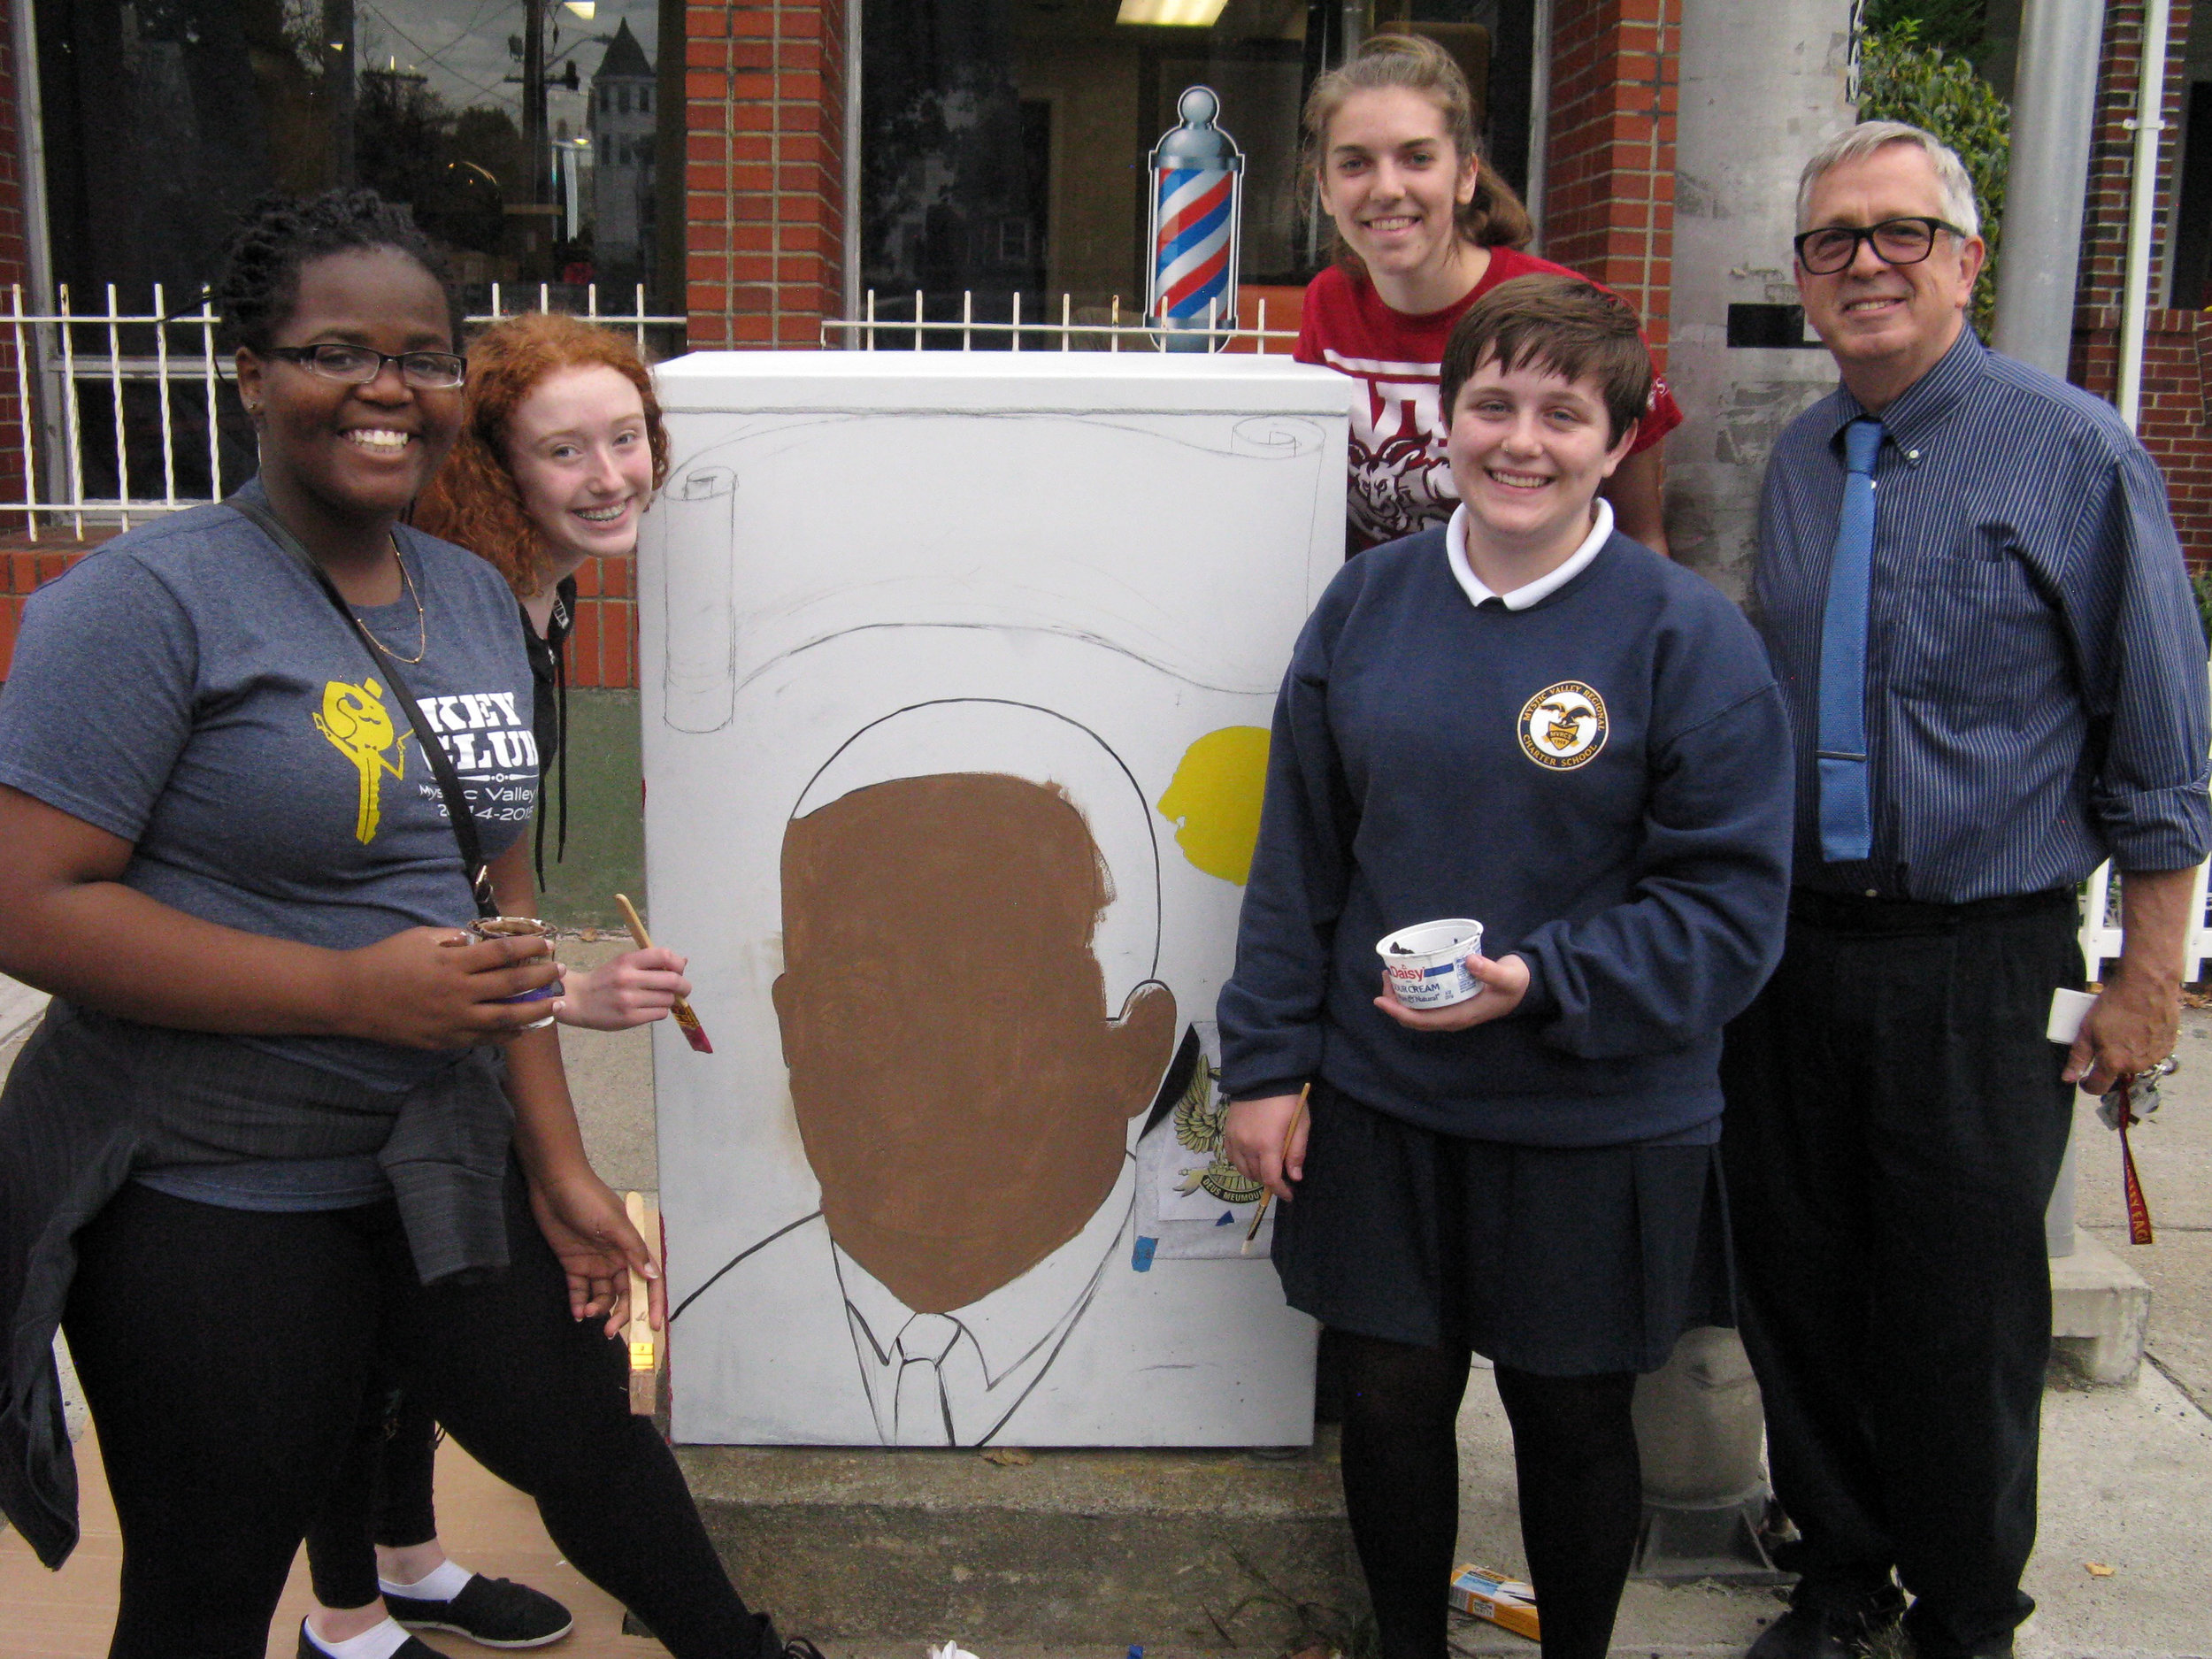 The Mystic Valley art club paints a switch-box in honor of Malden City Council's first African American member, Herbert L. Jackson.